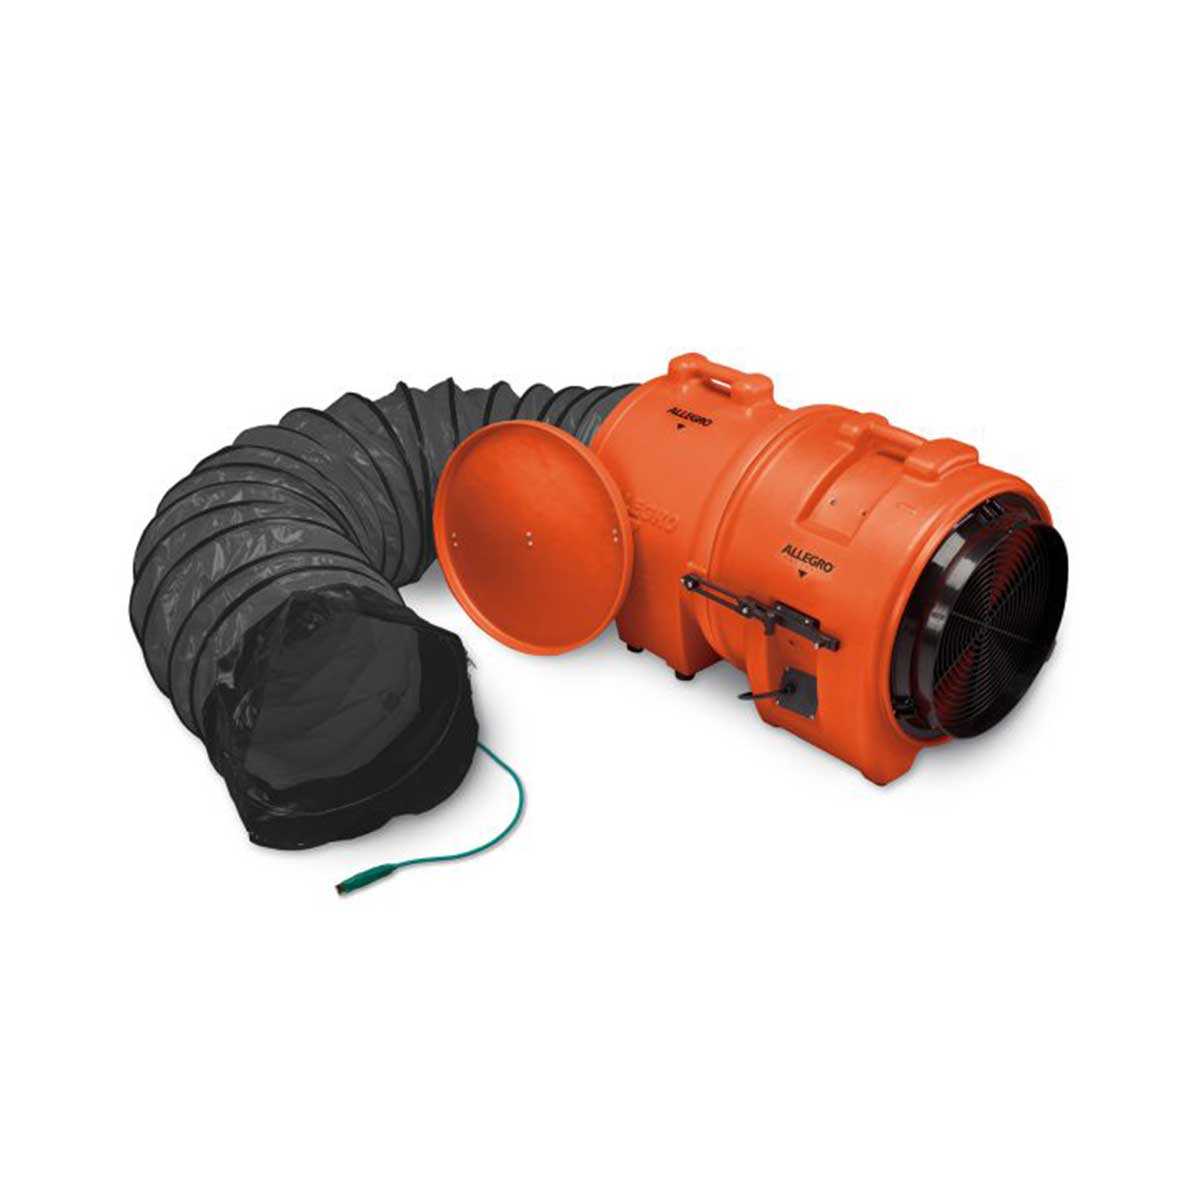 16″ Axial Explosion-Proof (EX) Plastic Blower w/ Canister & 15′ Ducting. Part: ALL-9558-15. Pkg: 1